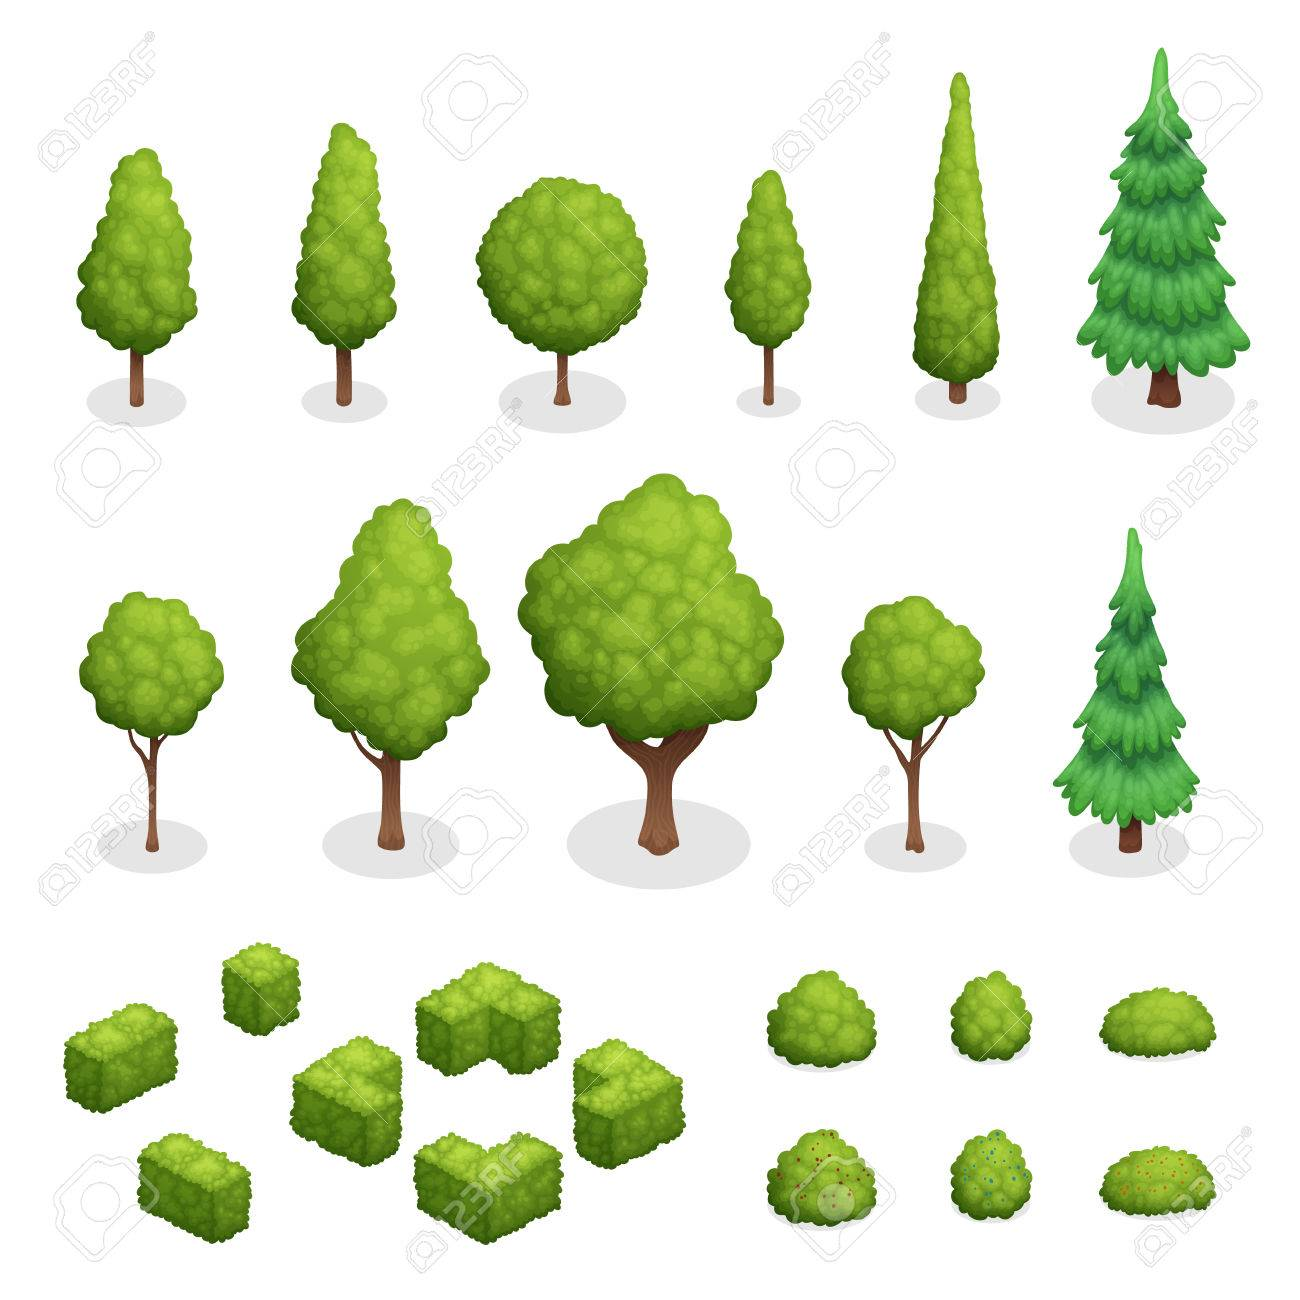 Isometric set of park plants with green trees and bushes of various shapes isolated vector illustration - 79591622